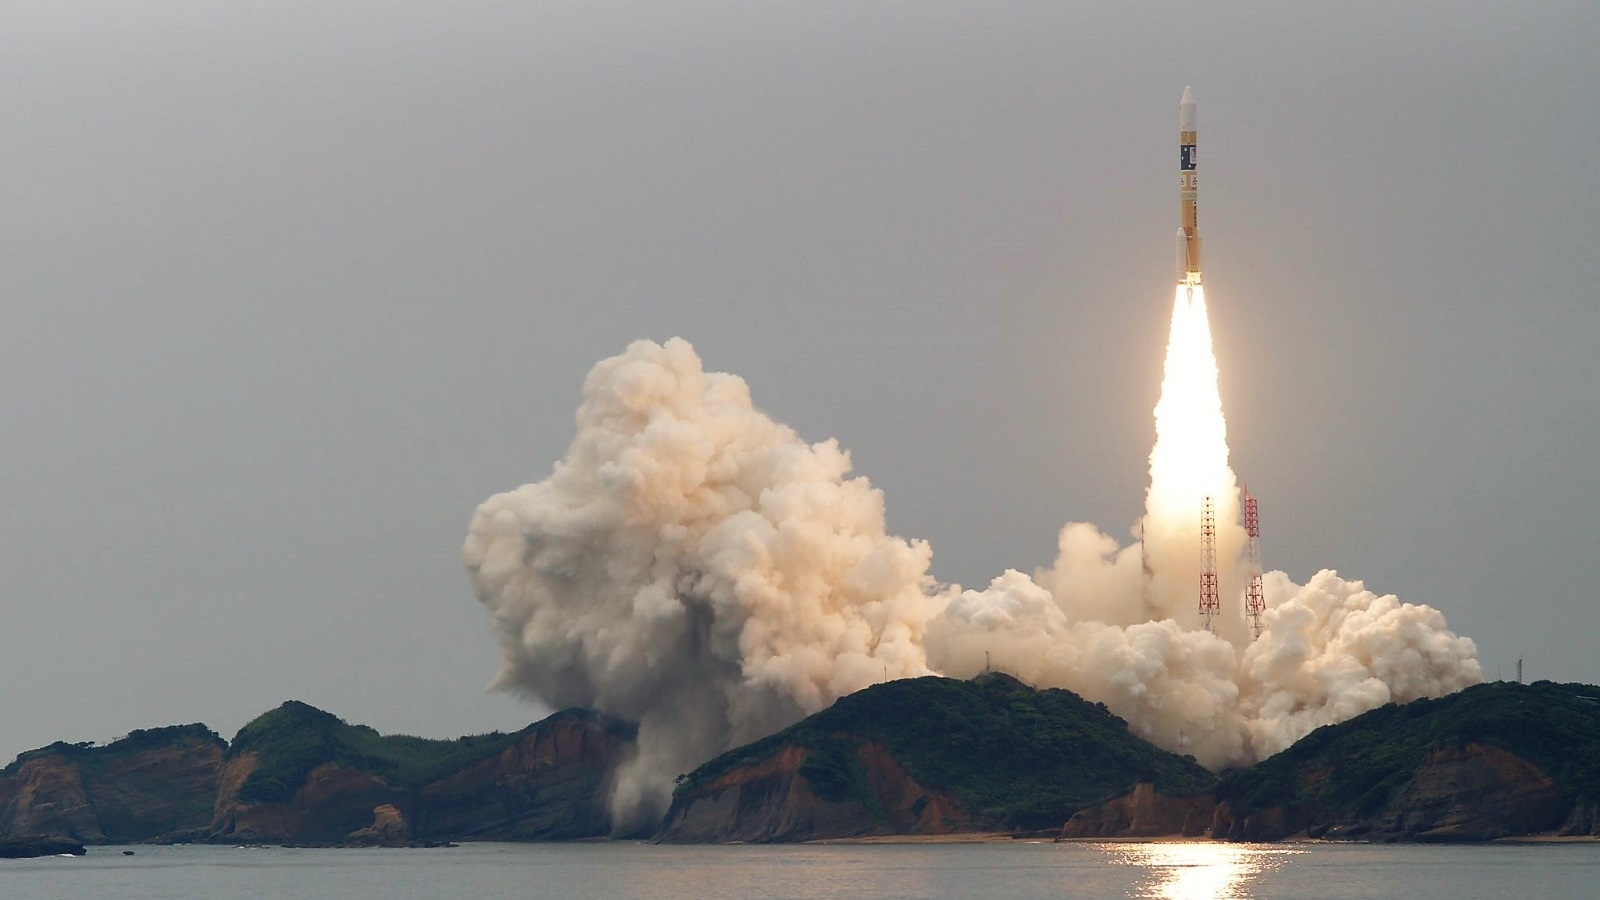 The launch of H-IIA (F34) / MICHIBIKI-2